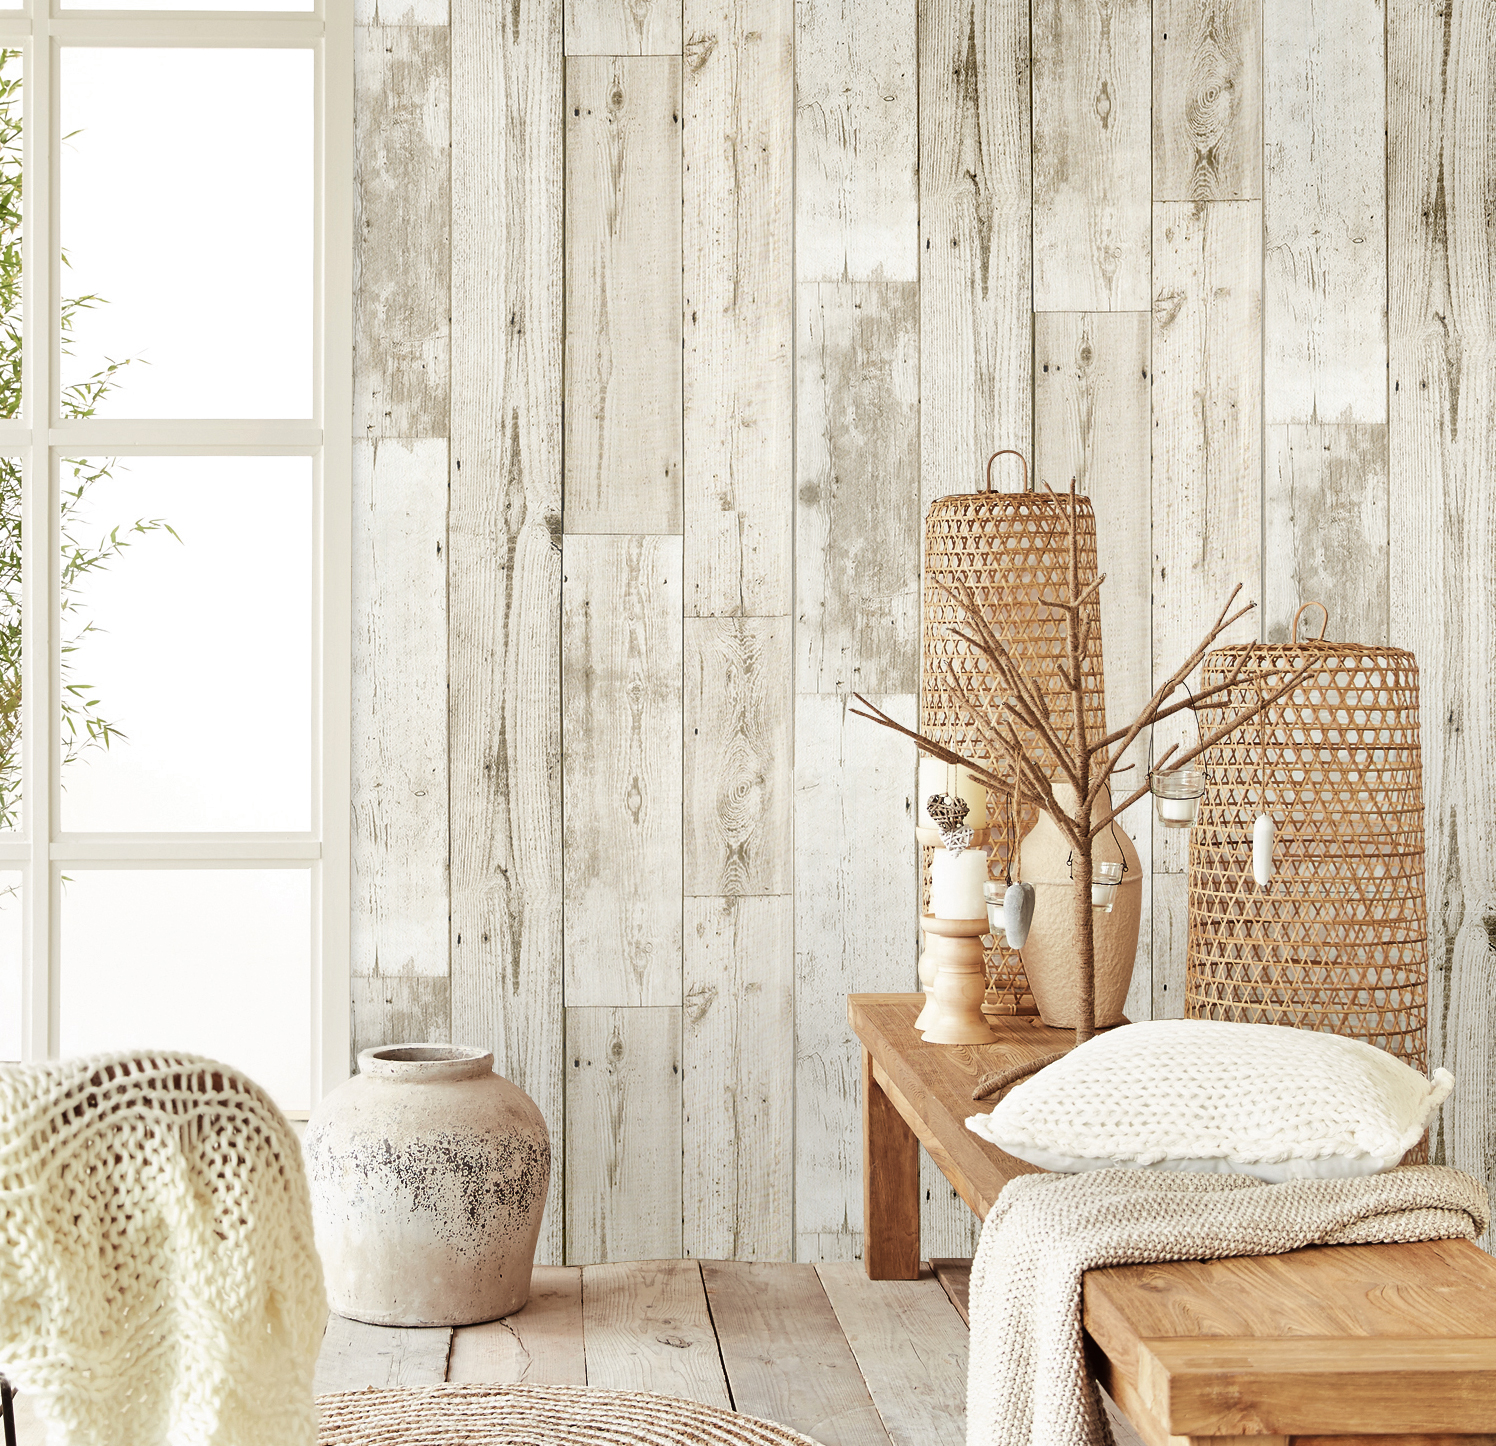 3d Waterproof Wallpaper Vintage Wood Panel Wallpaper For Walls Self Adhesive Contact Paper For Hotel Library Bedroom Living Room